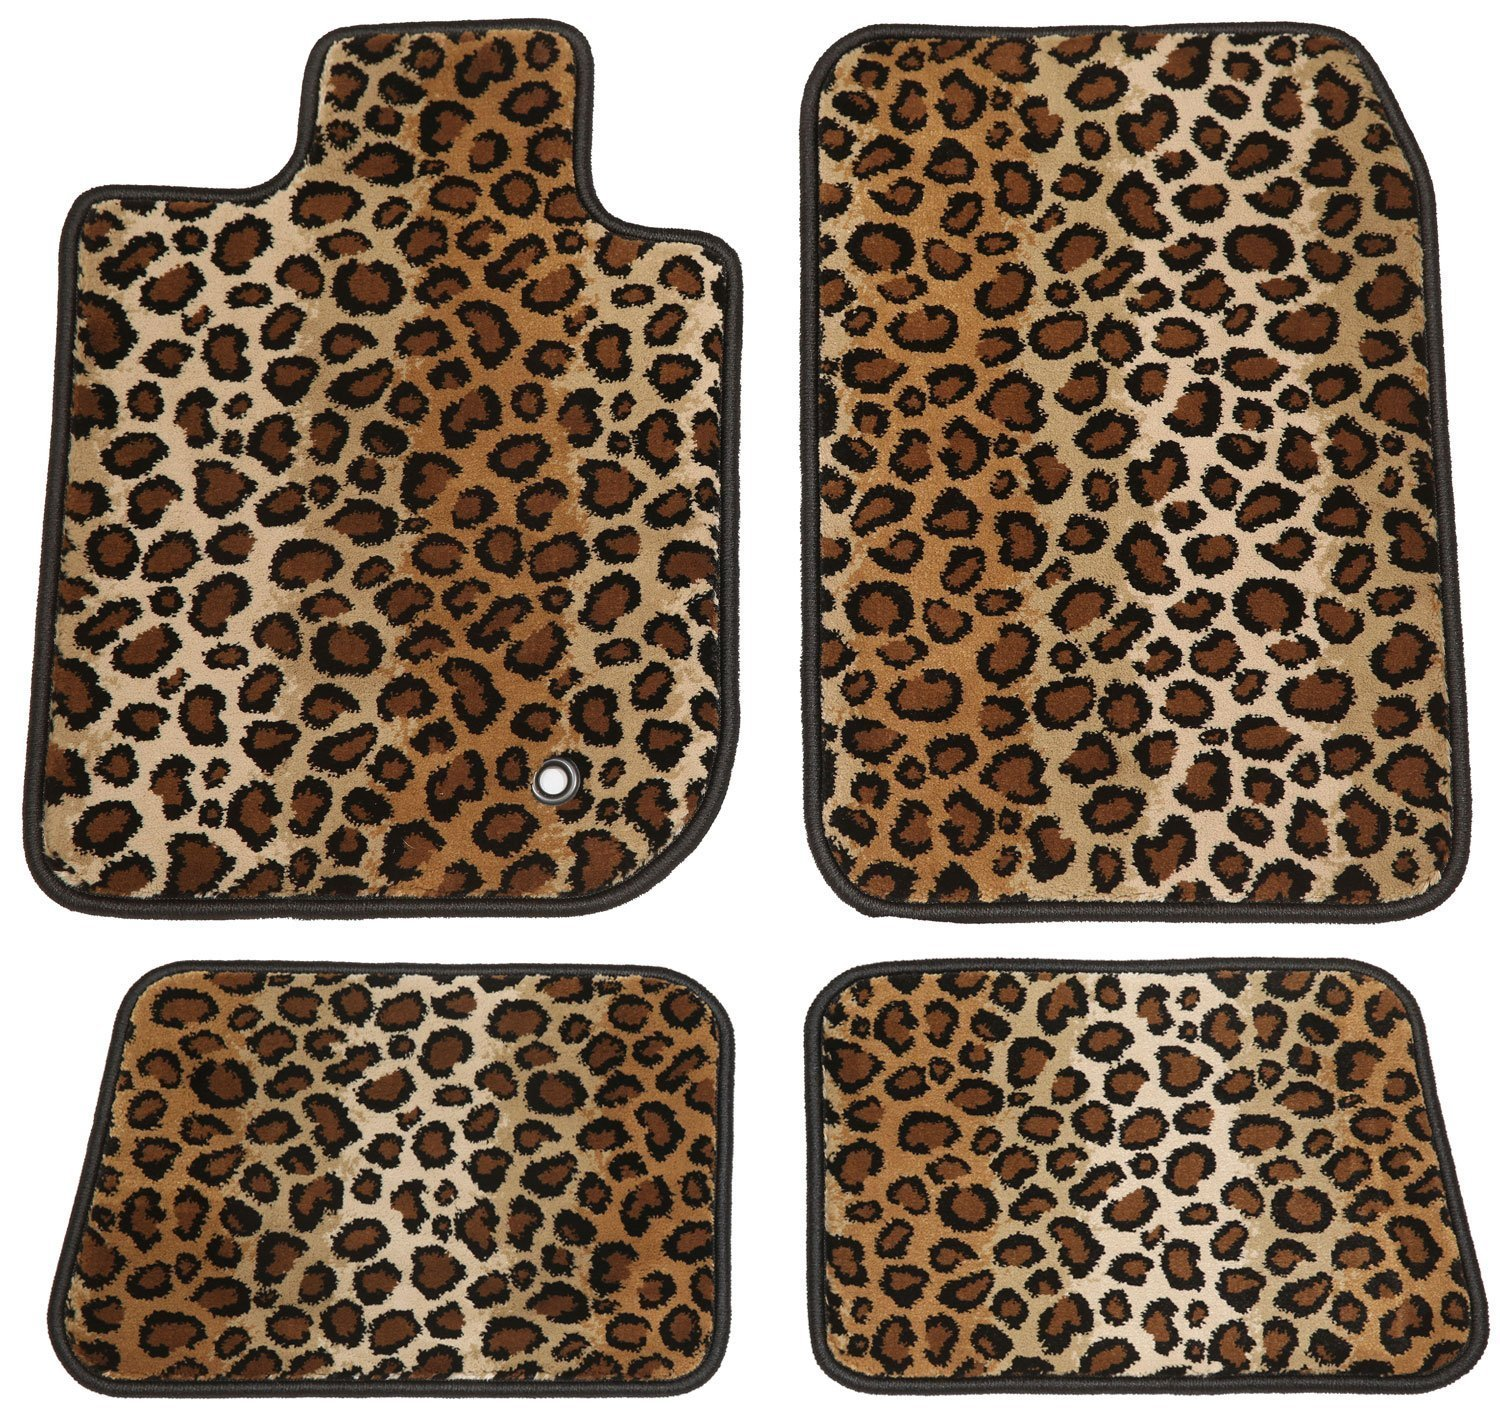 2012 GGBAILEY D50358-S2A-LP Custom Fit Car Mats for 2011 2014 Passenger /& Rear Floor 2018 Chrysler 300 Leopard Driver 2016 2013 2015 2017